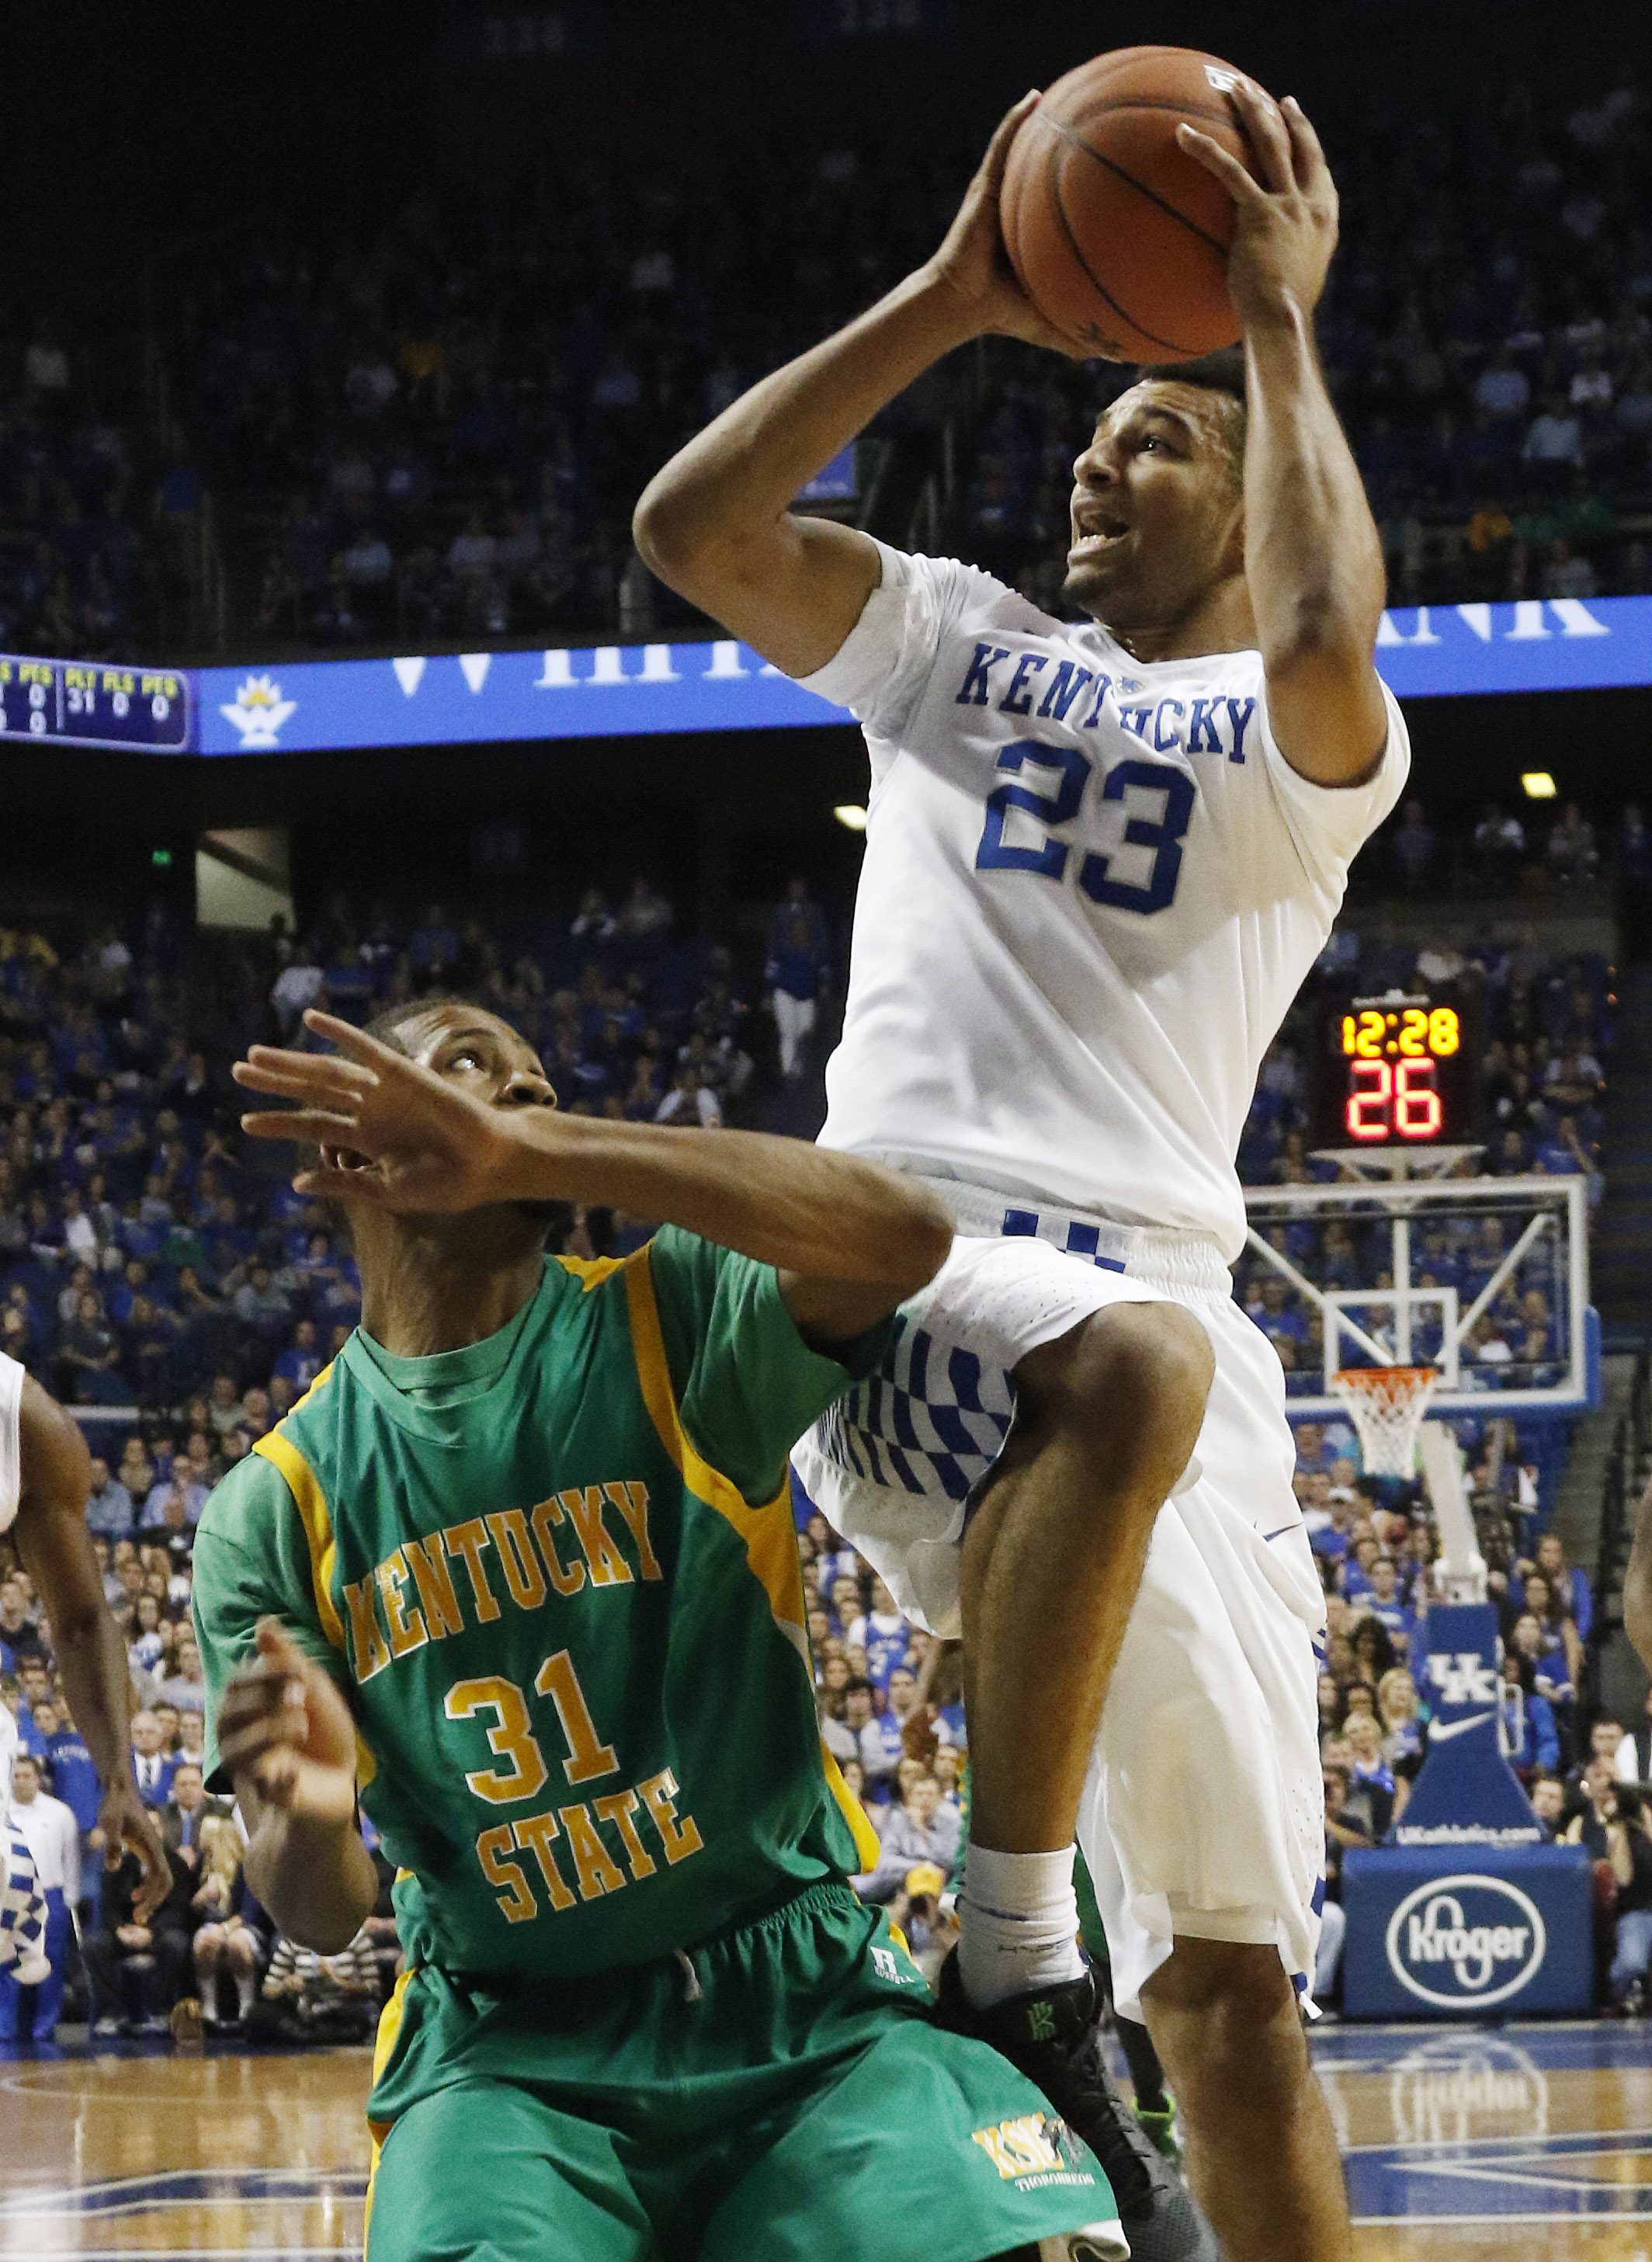 Kentucky's Jamal Murray (23) shoots over the defense of Kentucky State's Michael Cross (31) during an NCAA college basketball exhibition game Friday, Nov. 6, 2015, in Lexington, Ky. (AP Photo/James Crisp)